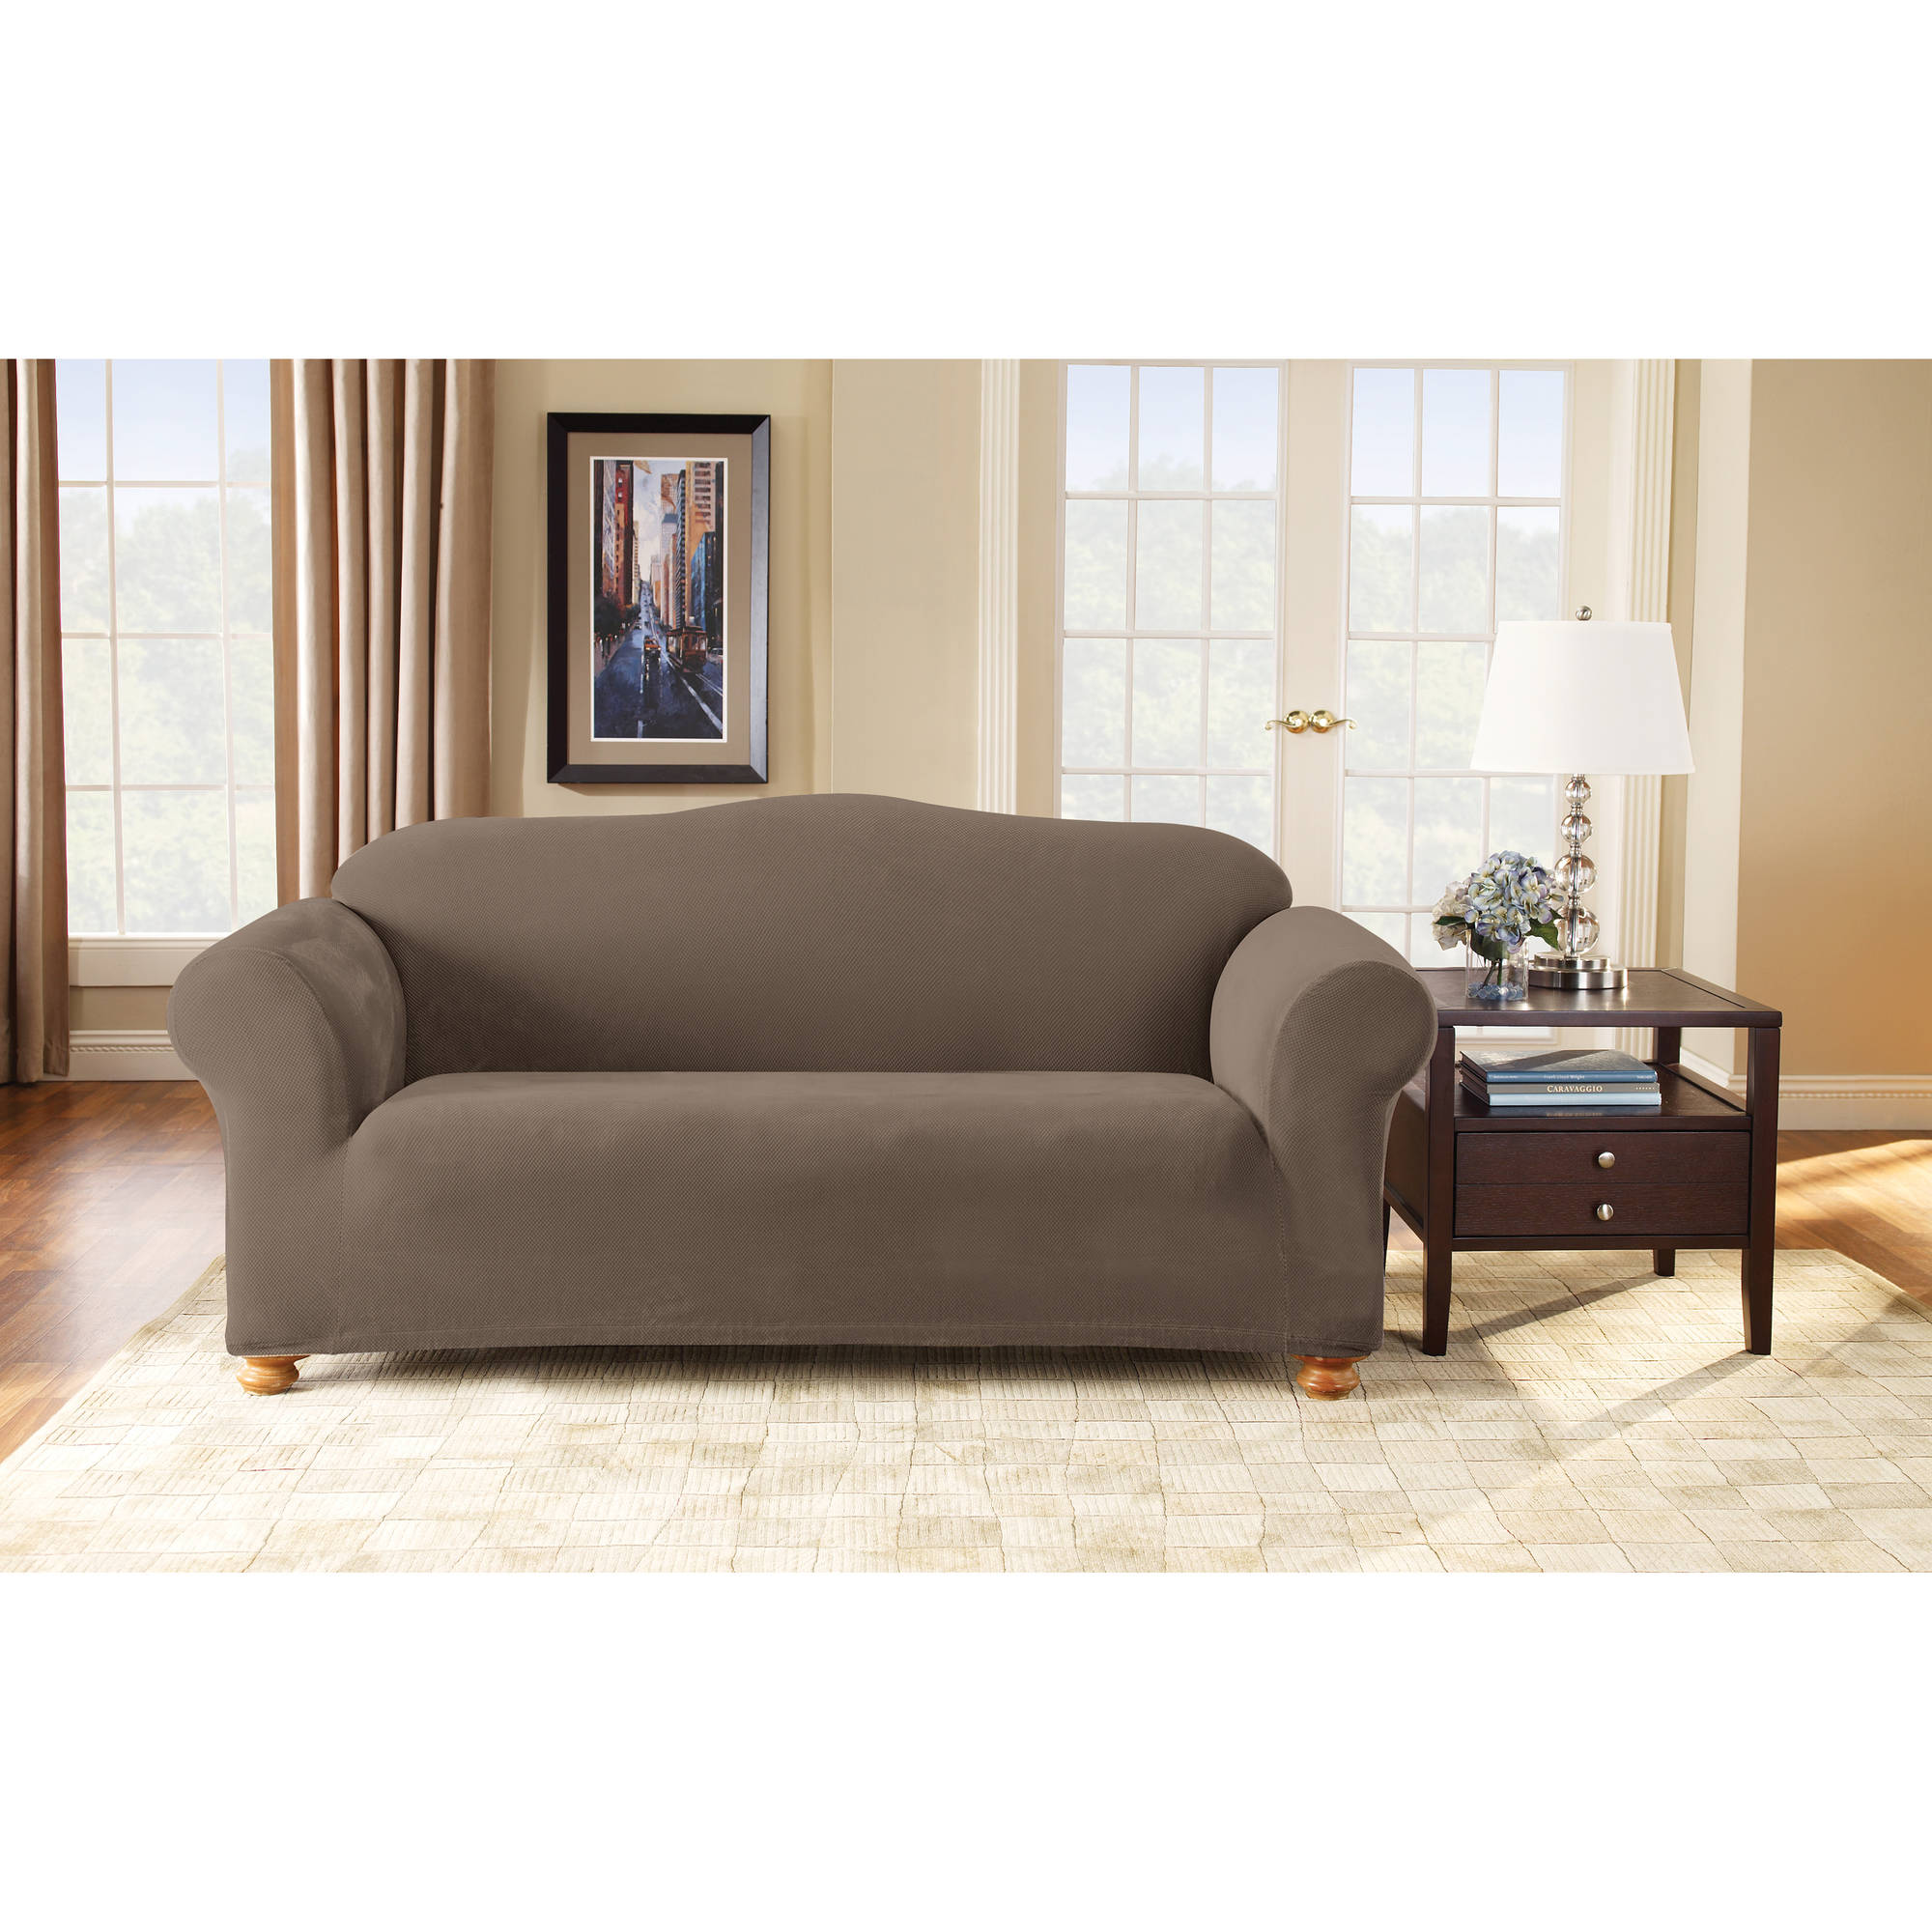 Stretch Pixel Corduroy Sofa Slipcover Taupe - Sure Fit